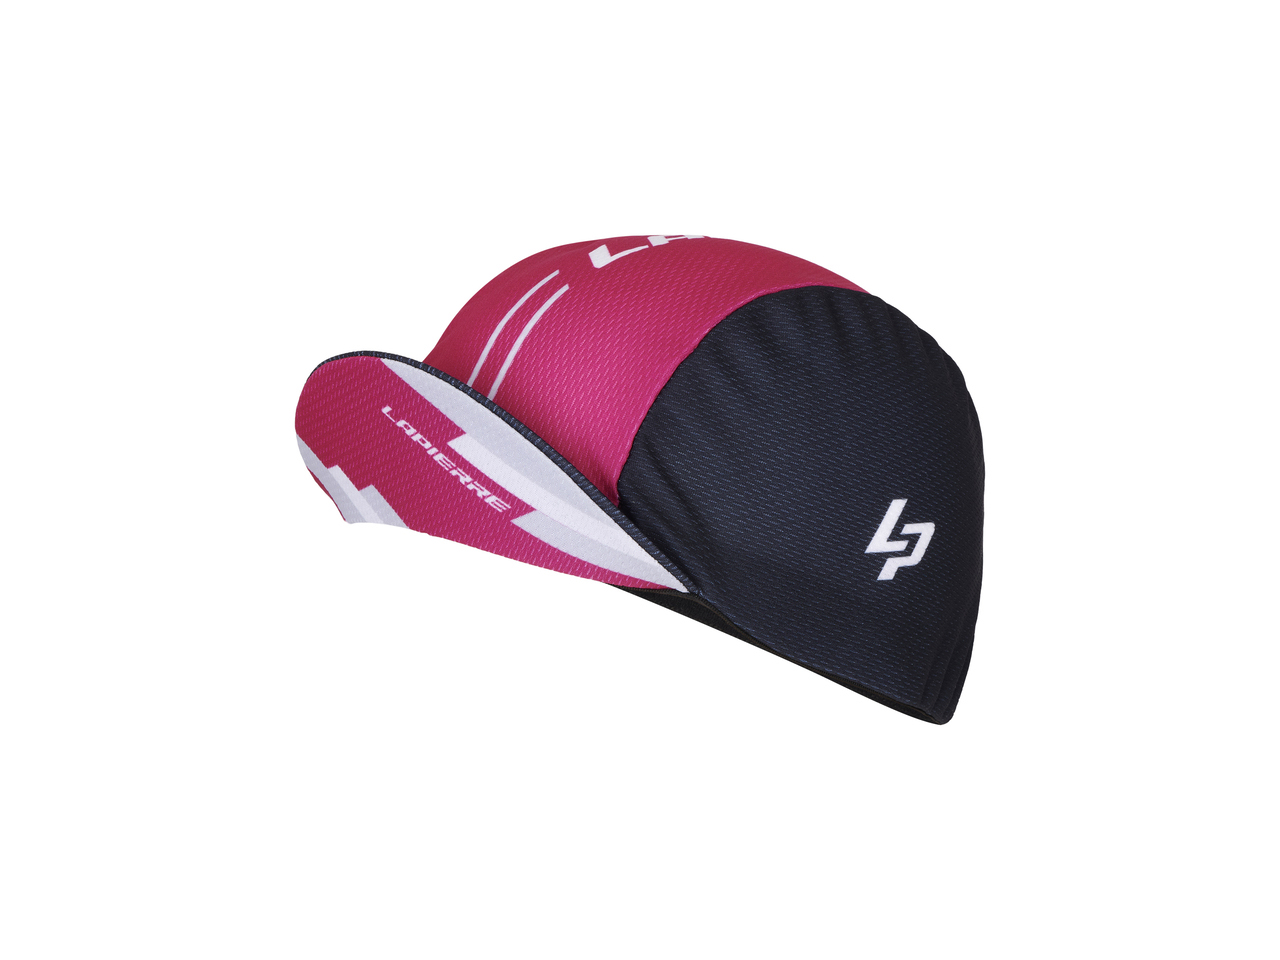 Lapierre Madeleine cycling cap for women